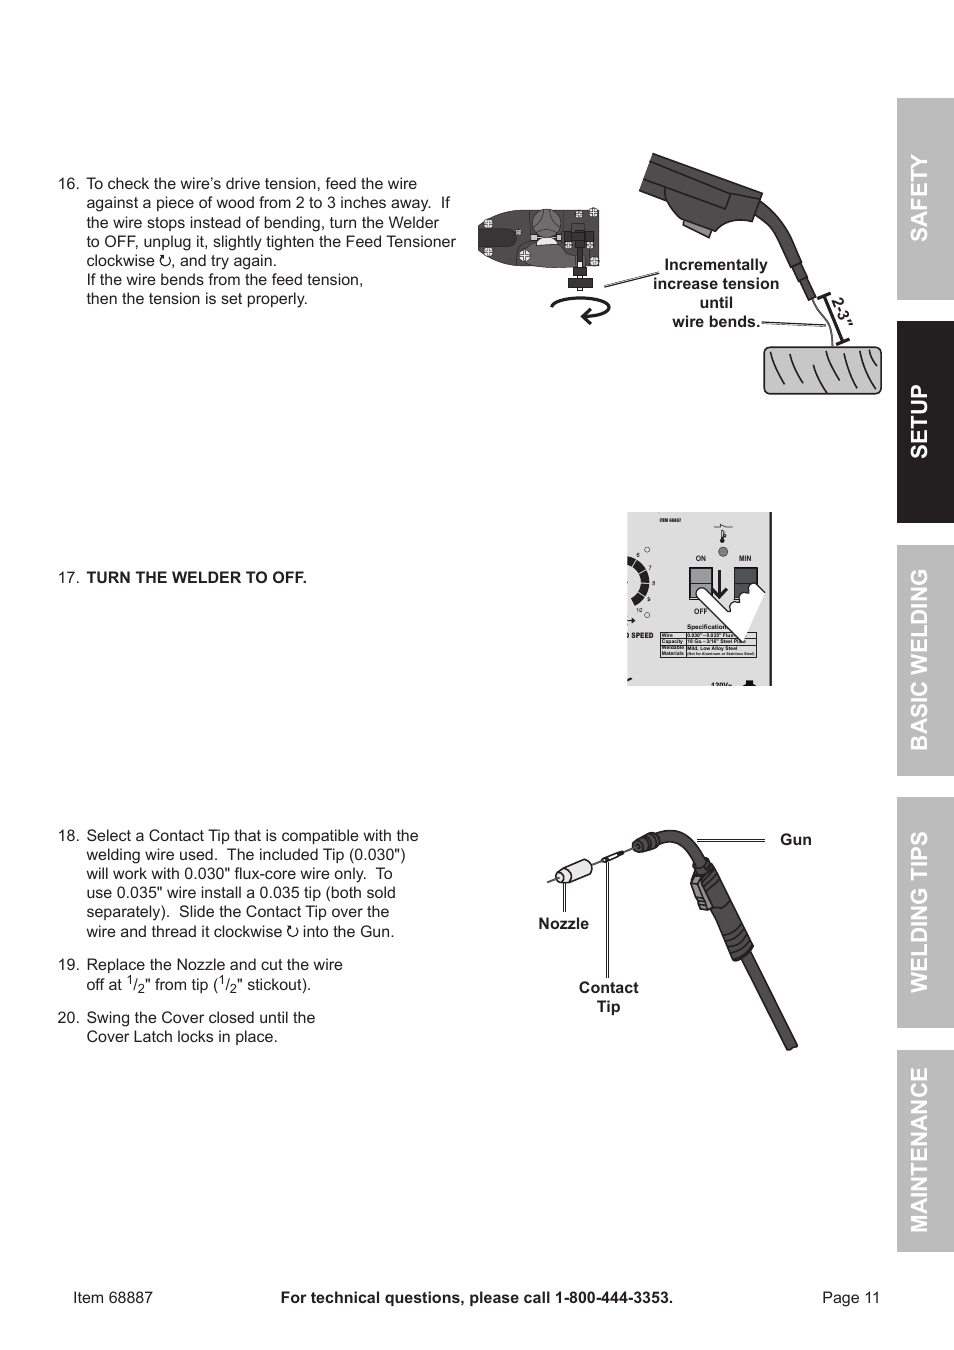 Chicago Electric 90 AMP FLUX WIRE WELDER 68887 User Manual | Page 11 ...